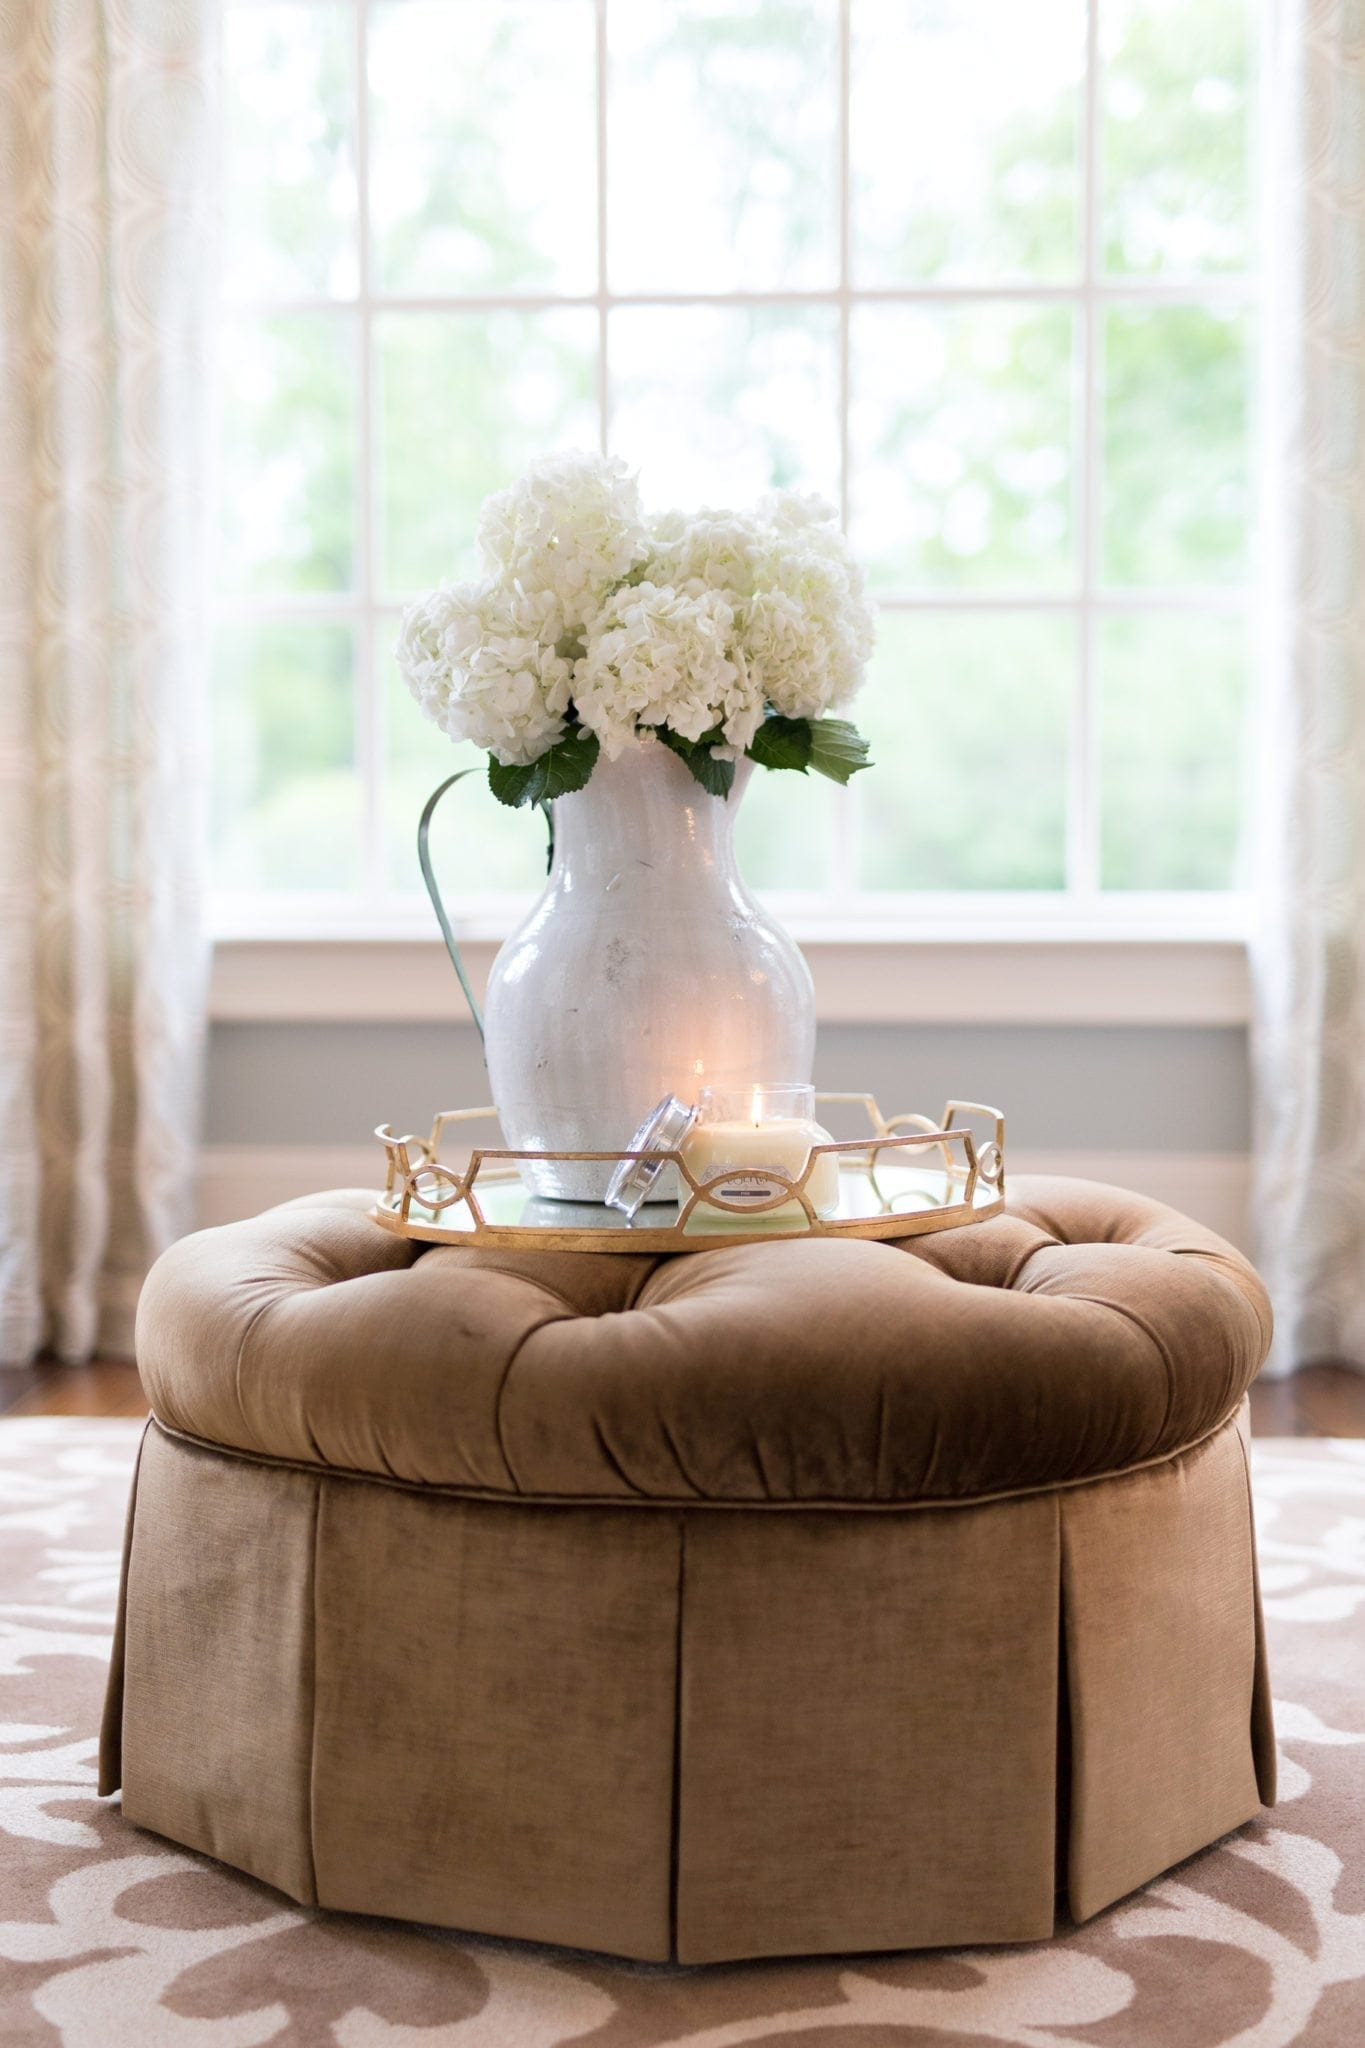 Three easy ways to keep fresh hydrangea from wilting. These no fail steps will keep your hydrangea arrangement looking fuller longer. If you're hydrangea is starting to wilt, it's not dead! You can revive wilted hydrangea with three easy steps.